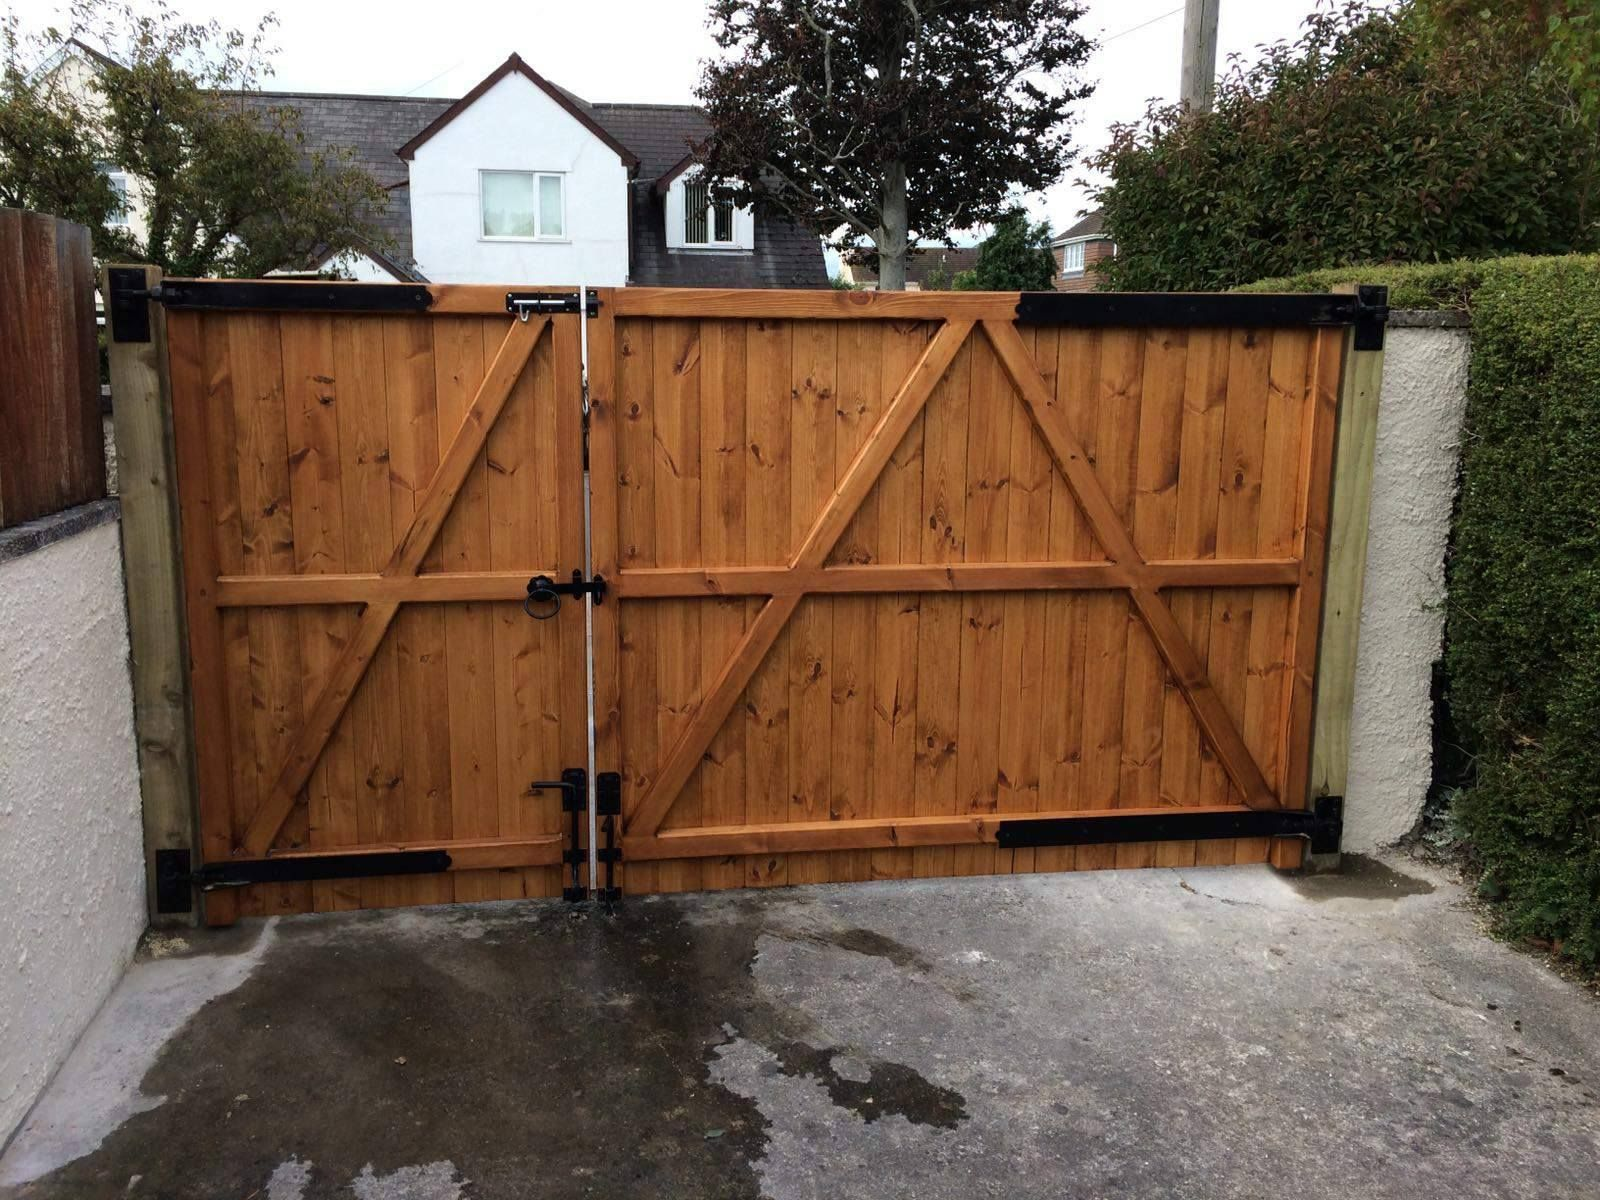 Rear View Of 3 4 Split Driveway Gate Fitted Using Adjustable 24 Gate Hinges In 2020 Wood Gates Driveway Wood Fence Gates Wooden Gates Driveway